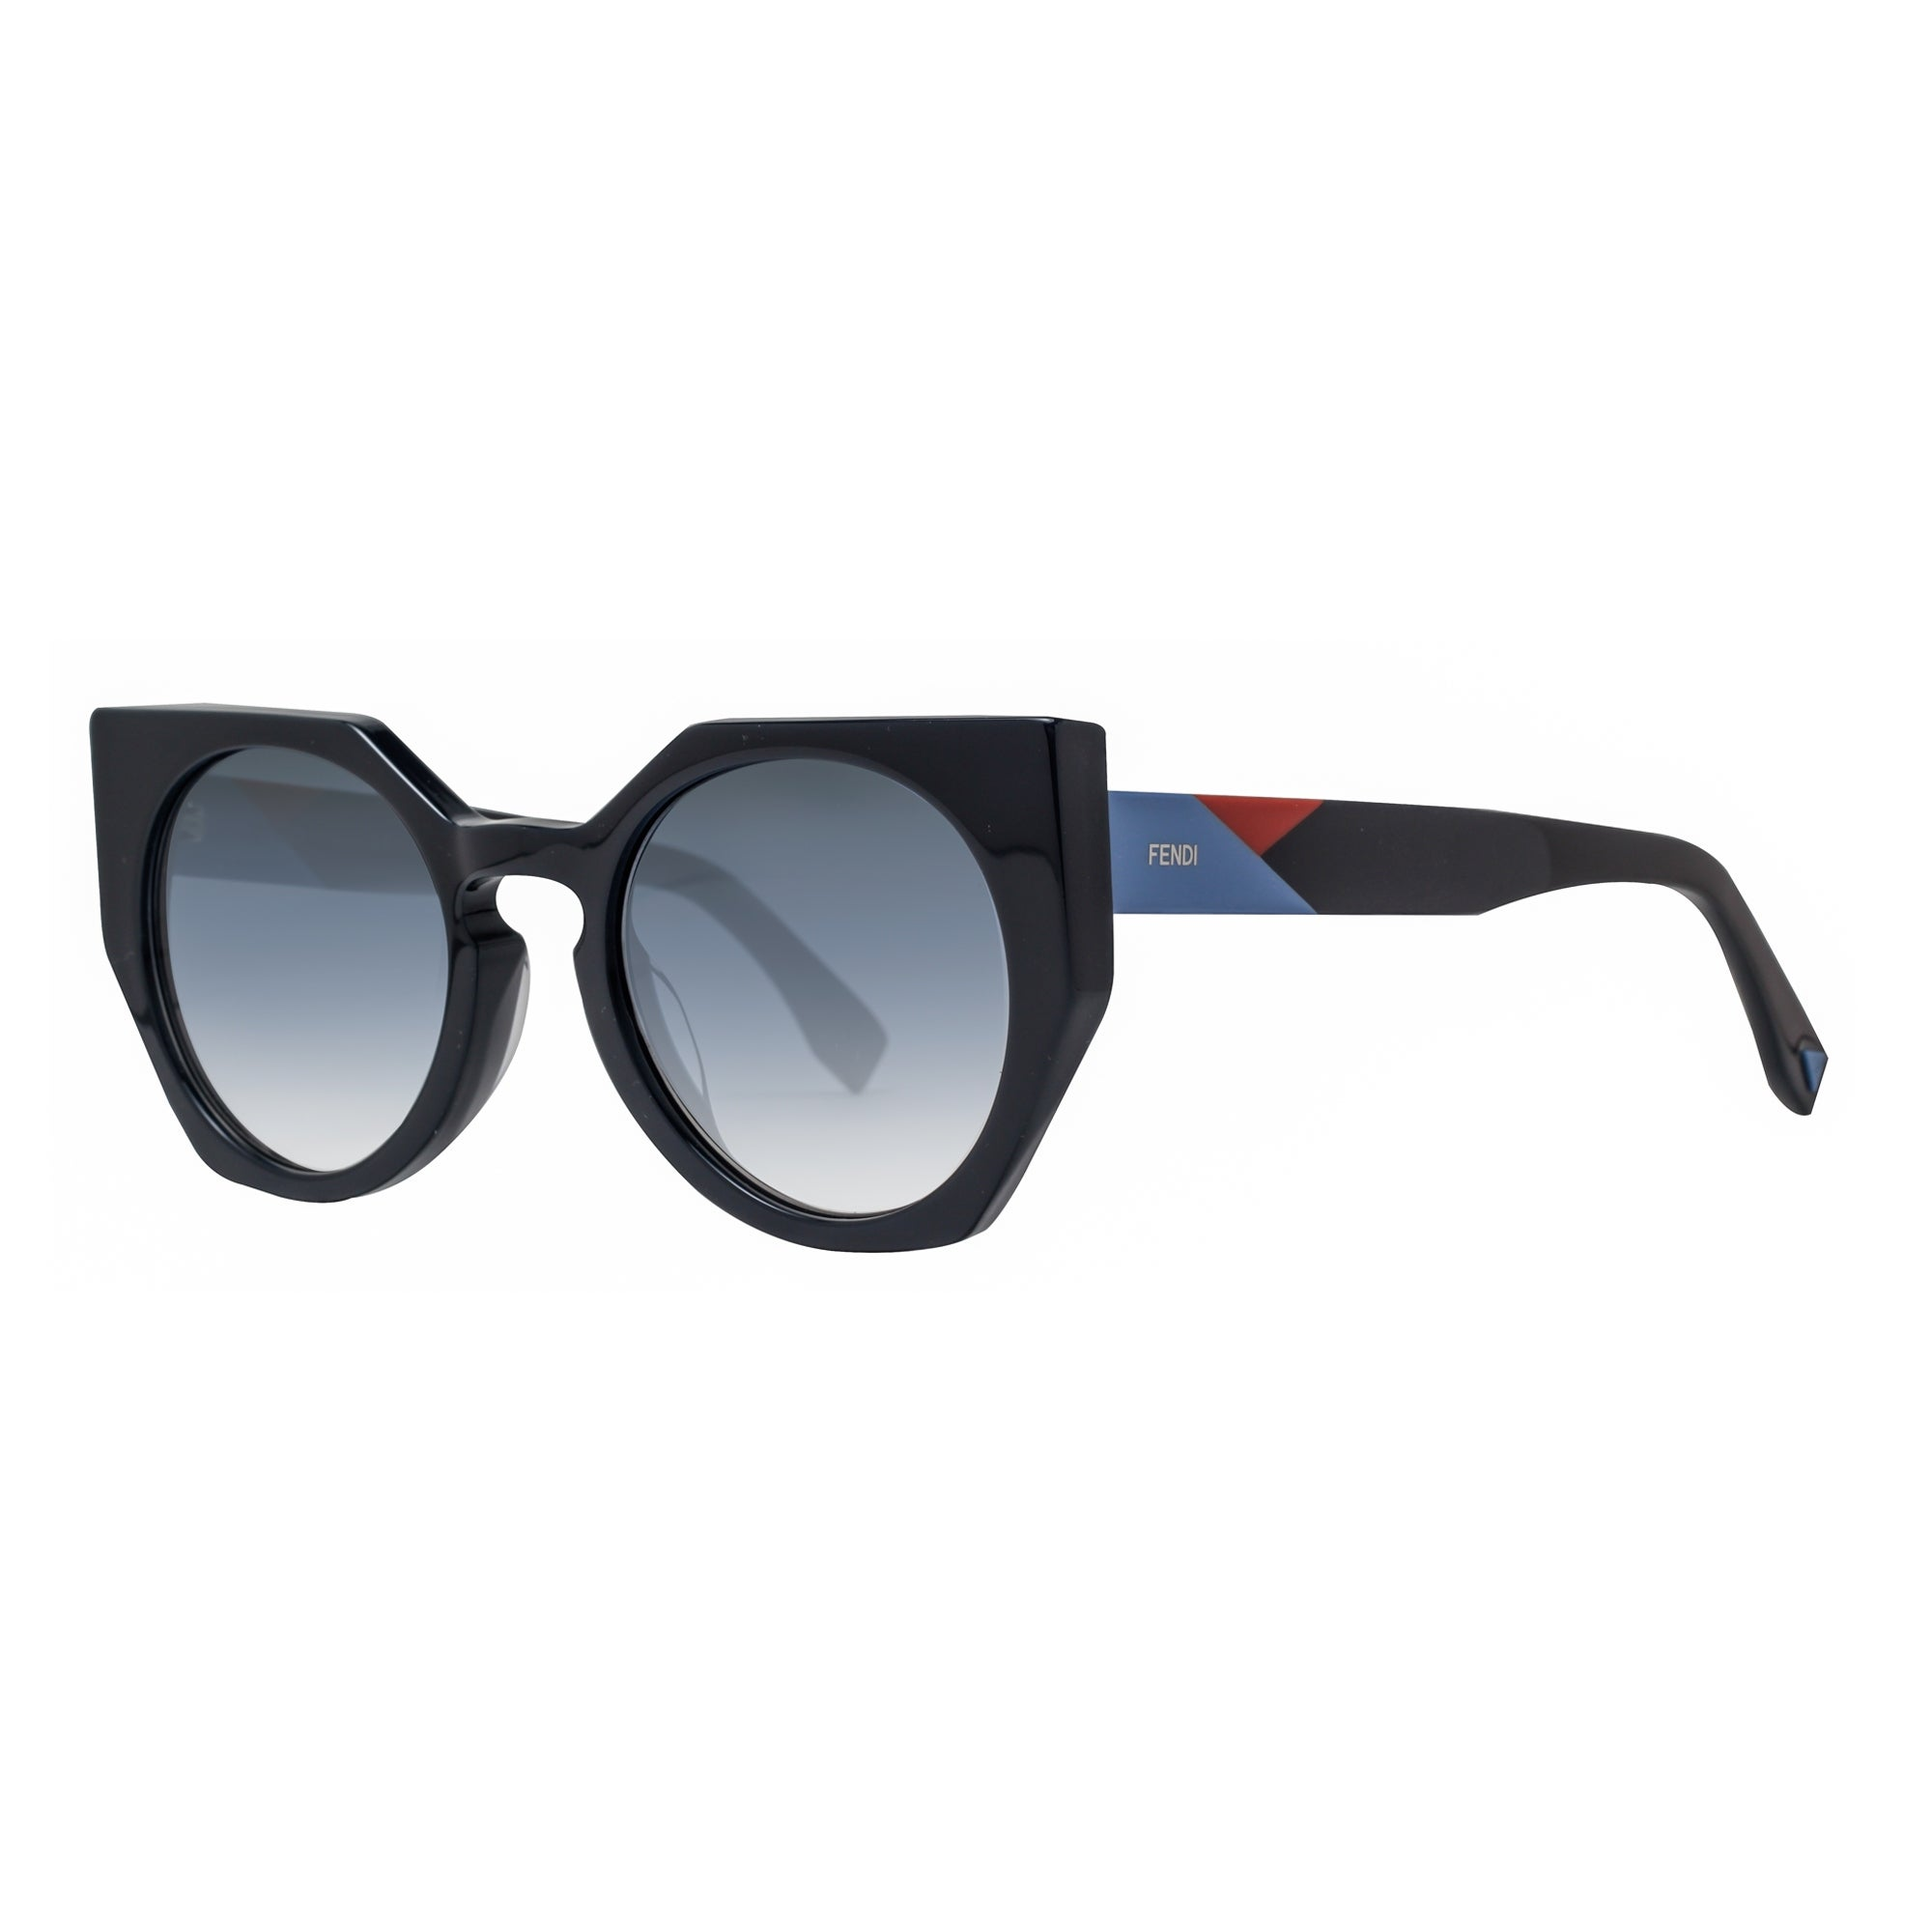 bce19493f56 Fendi FF 0151 S PJPU3 Facets Geometric Black Gradient Women s Cat Eye  Sunglasses - Blue - 51mm-22mm-140mm